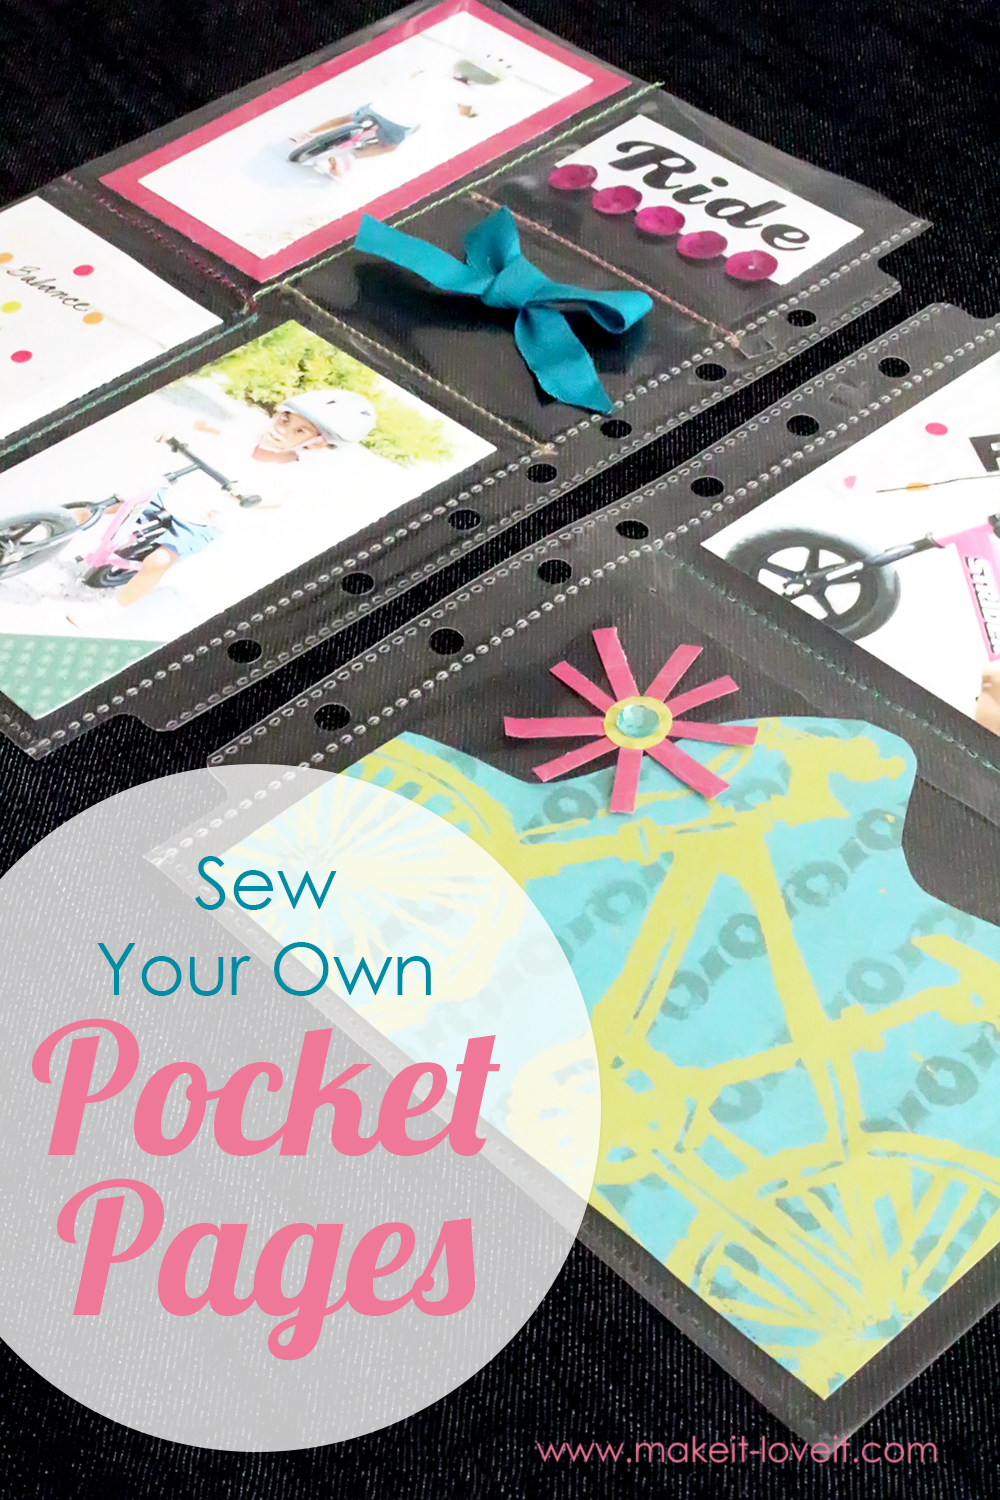 Sew Your Own Pocket Pages…for a variety of uses!